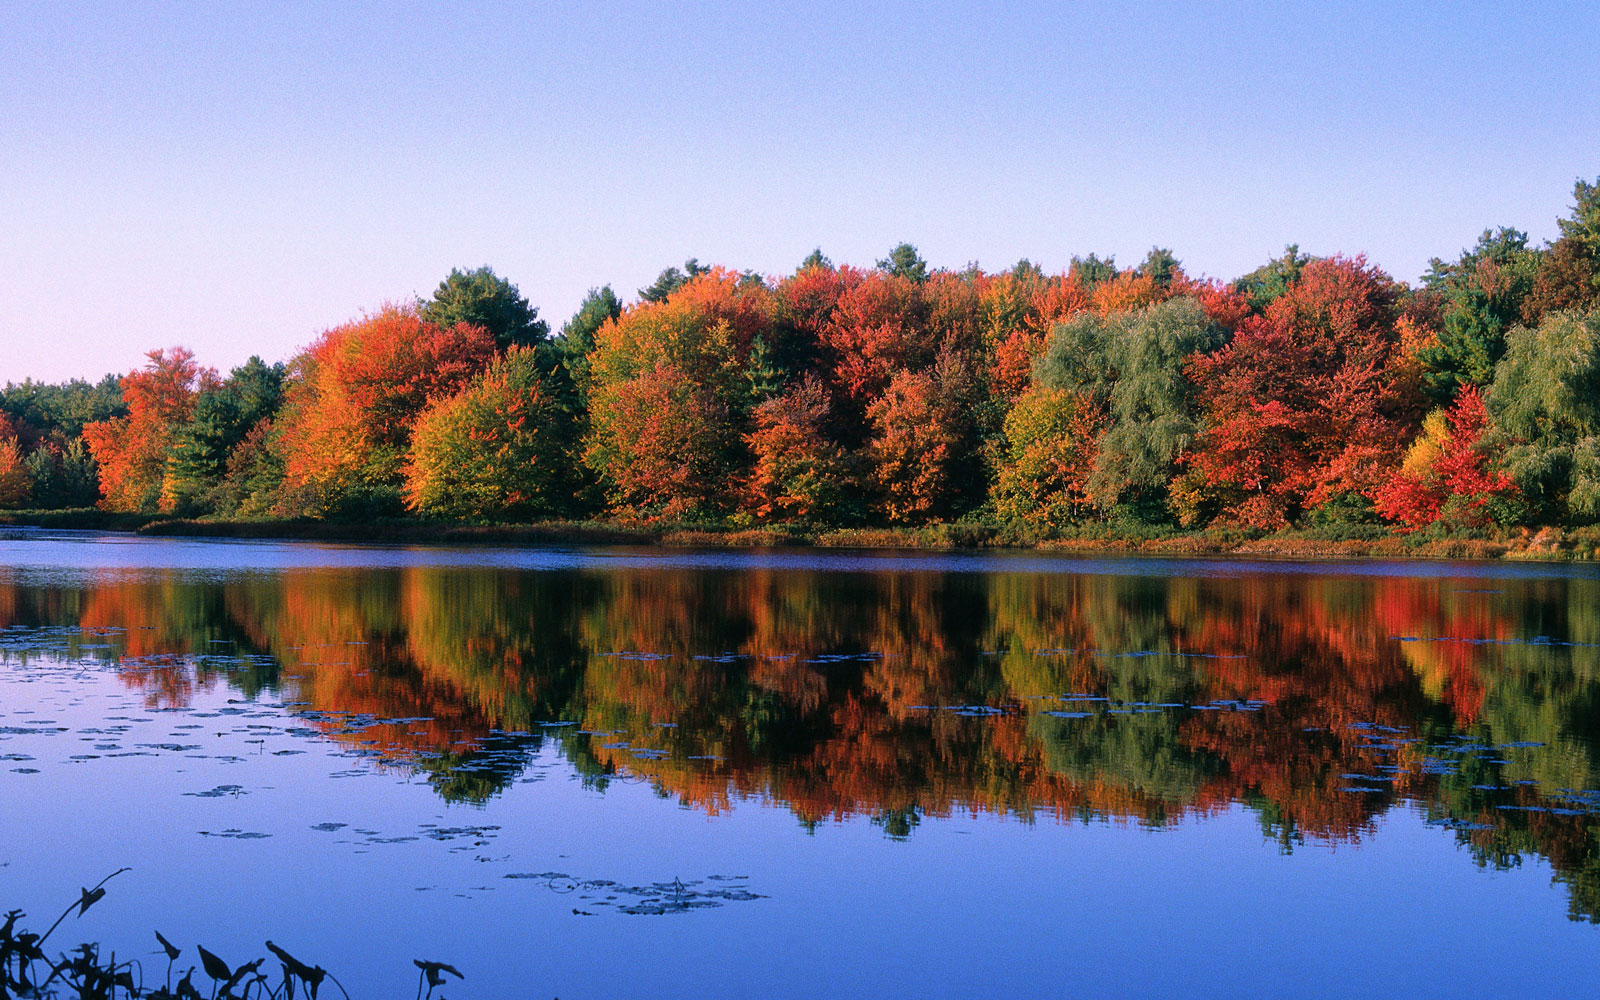 Celebrate Henry David Thoreau's 200th Birthday With a Visit to Walden Pond